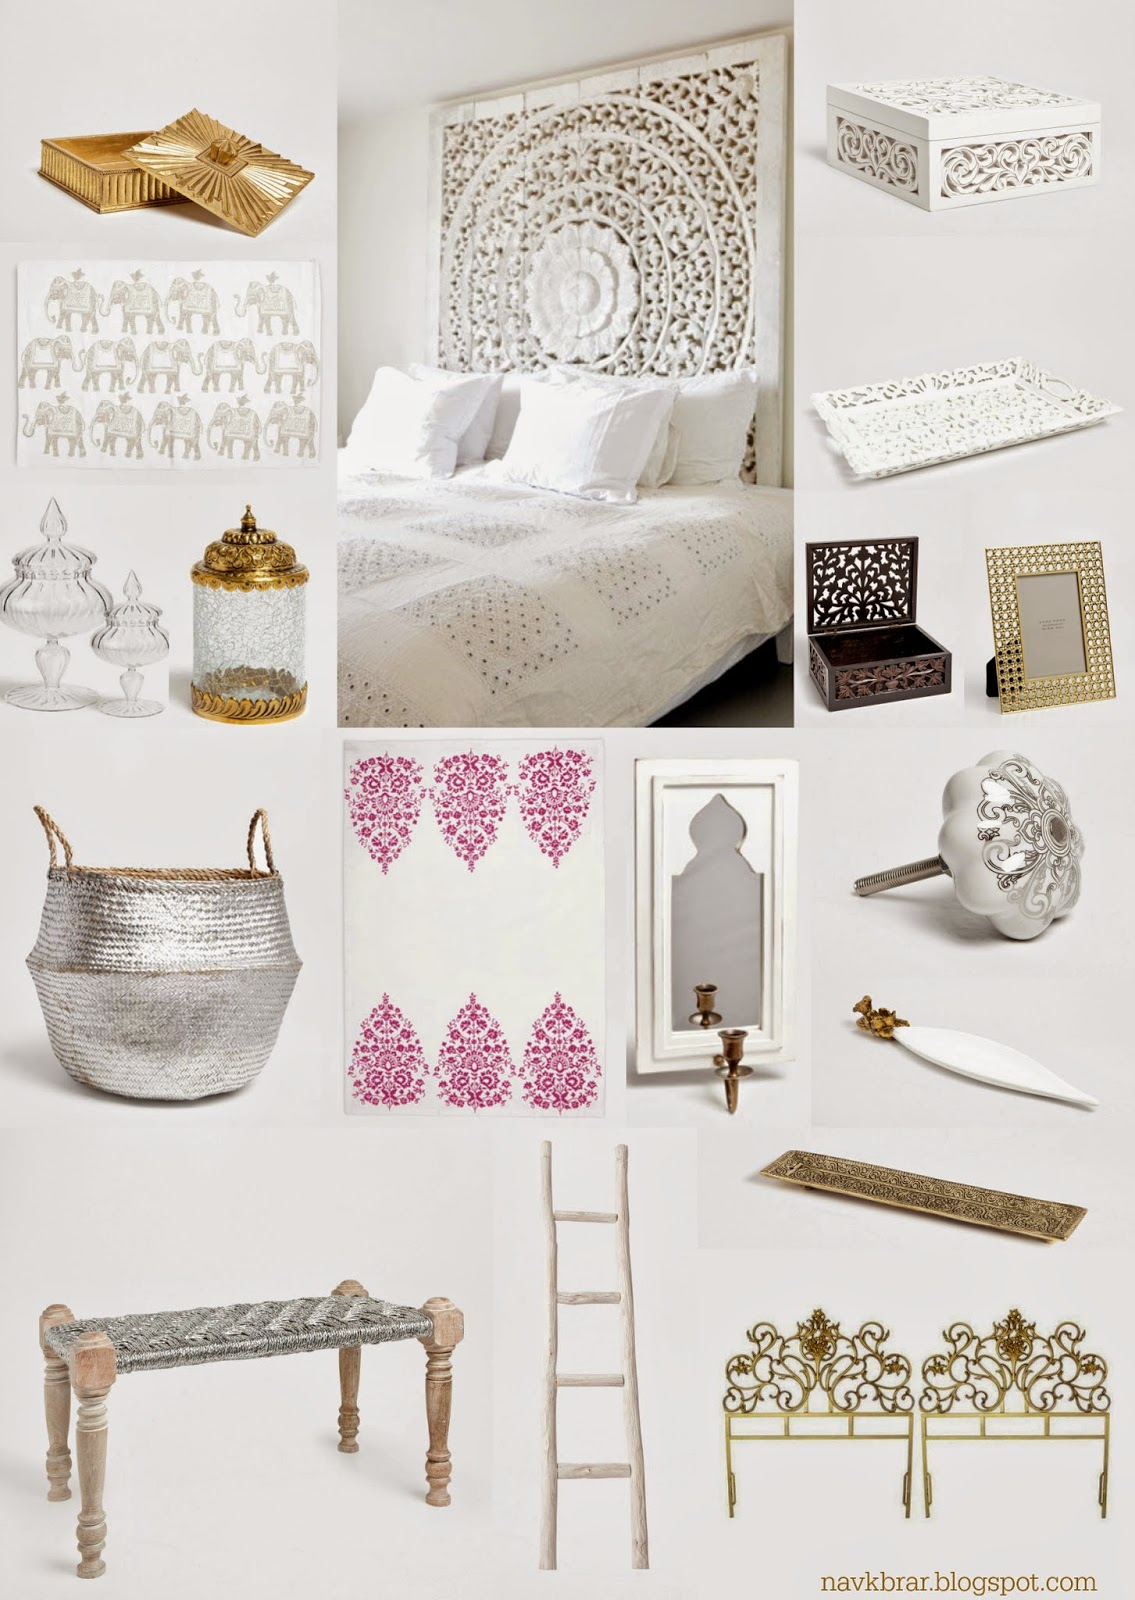 Nav k brar home decor how to create an indian rustic bedroom for Zara home bedroom ideas